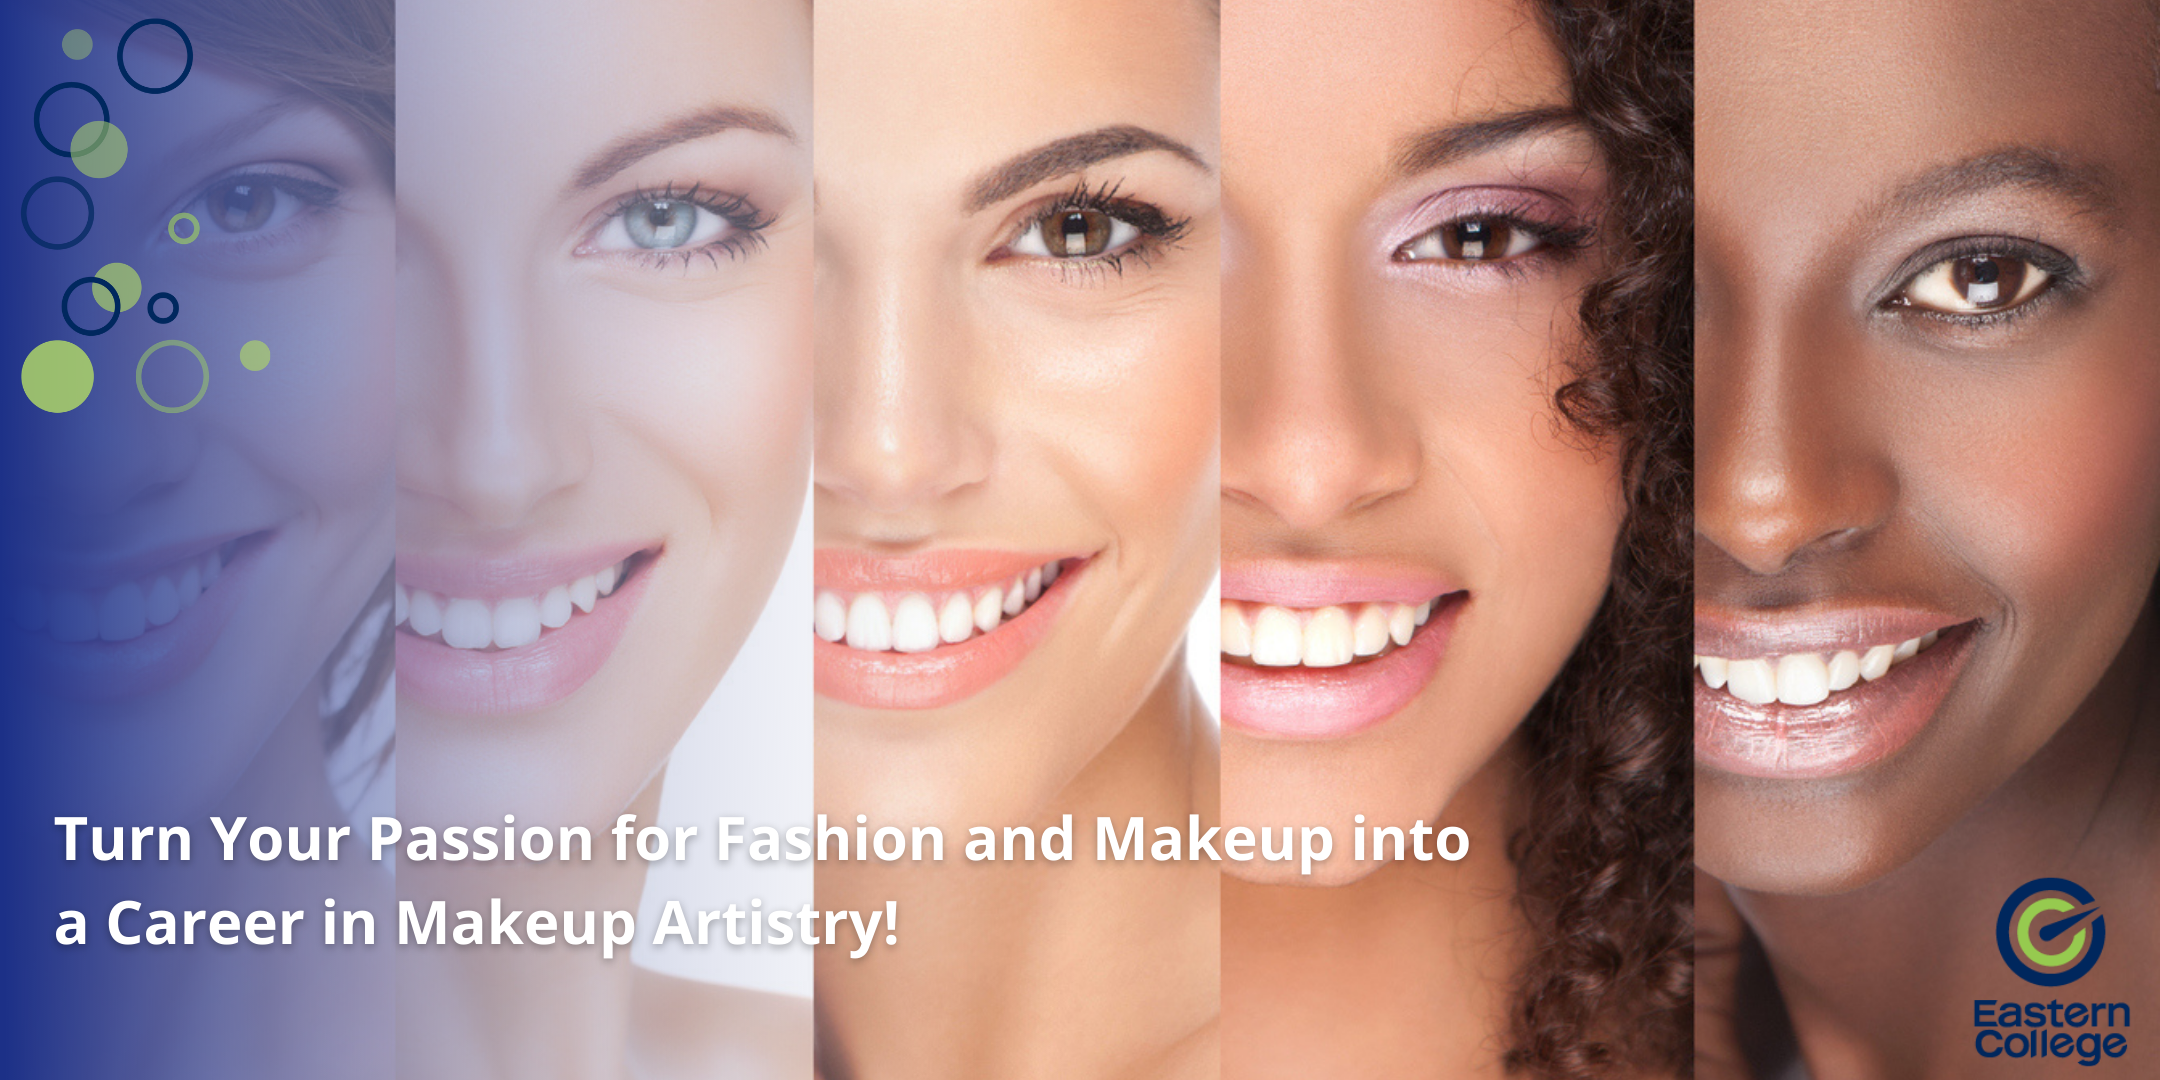 Turn your passion for fashion and makeup into a career in Makeup Artistry! featured image